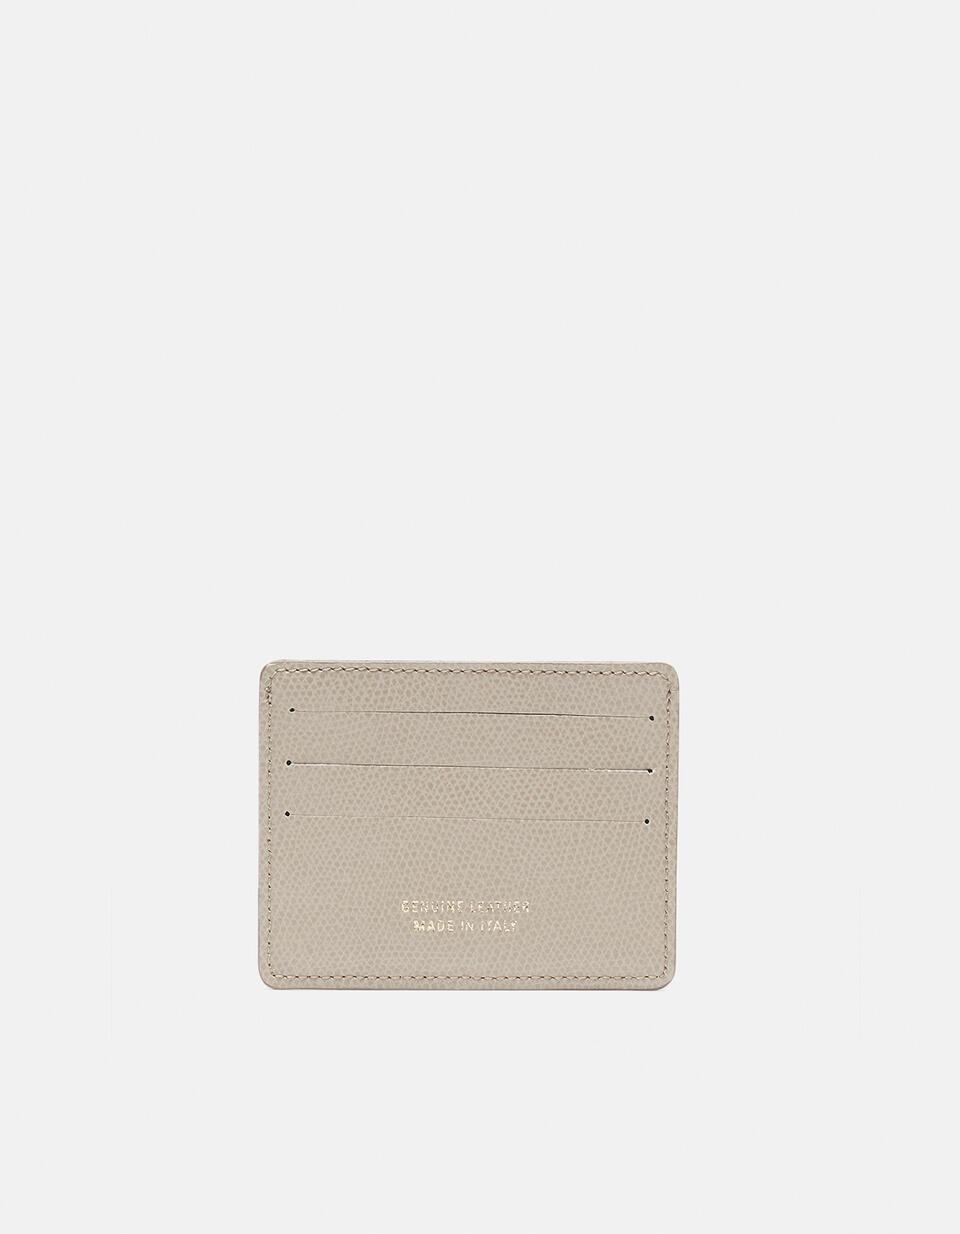 Bella credit car holder with space for banknotes TAUPE CHIARO Cuoieria Fiorentina